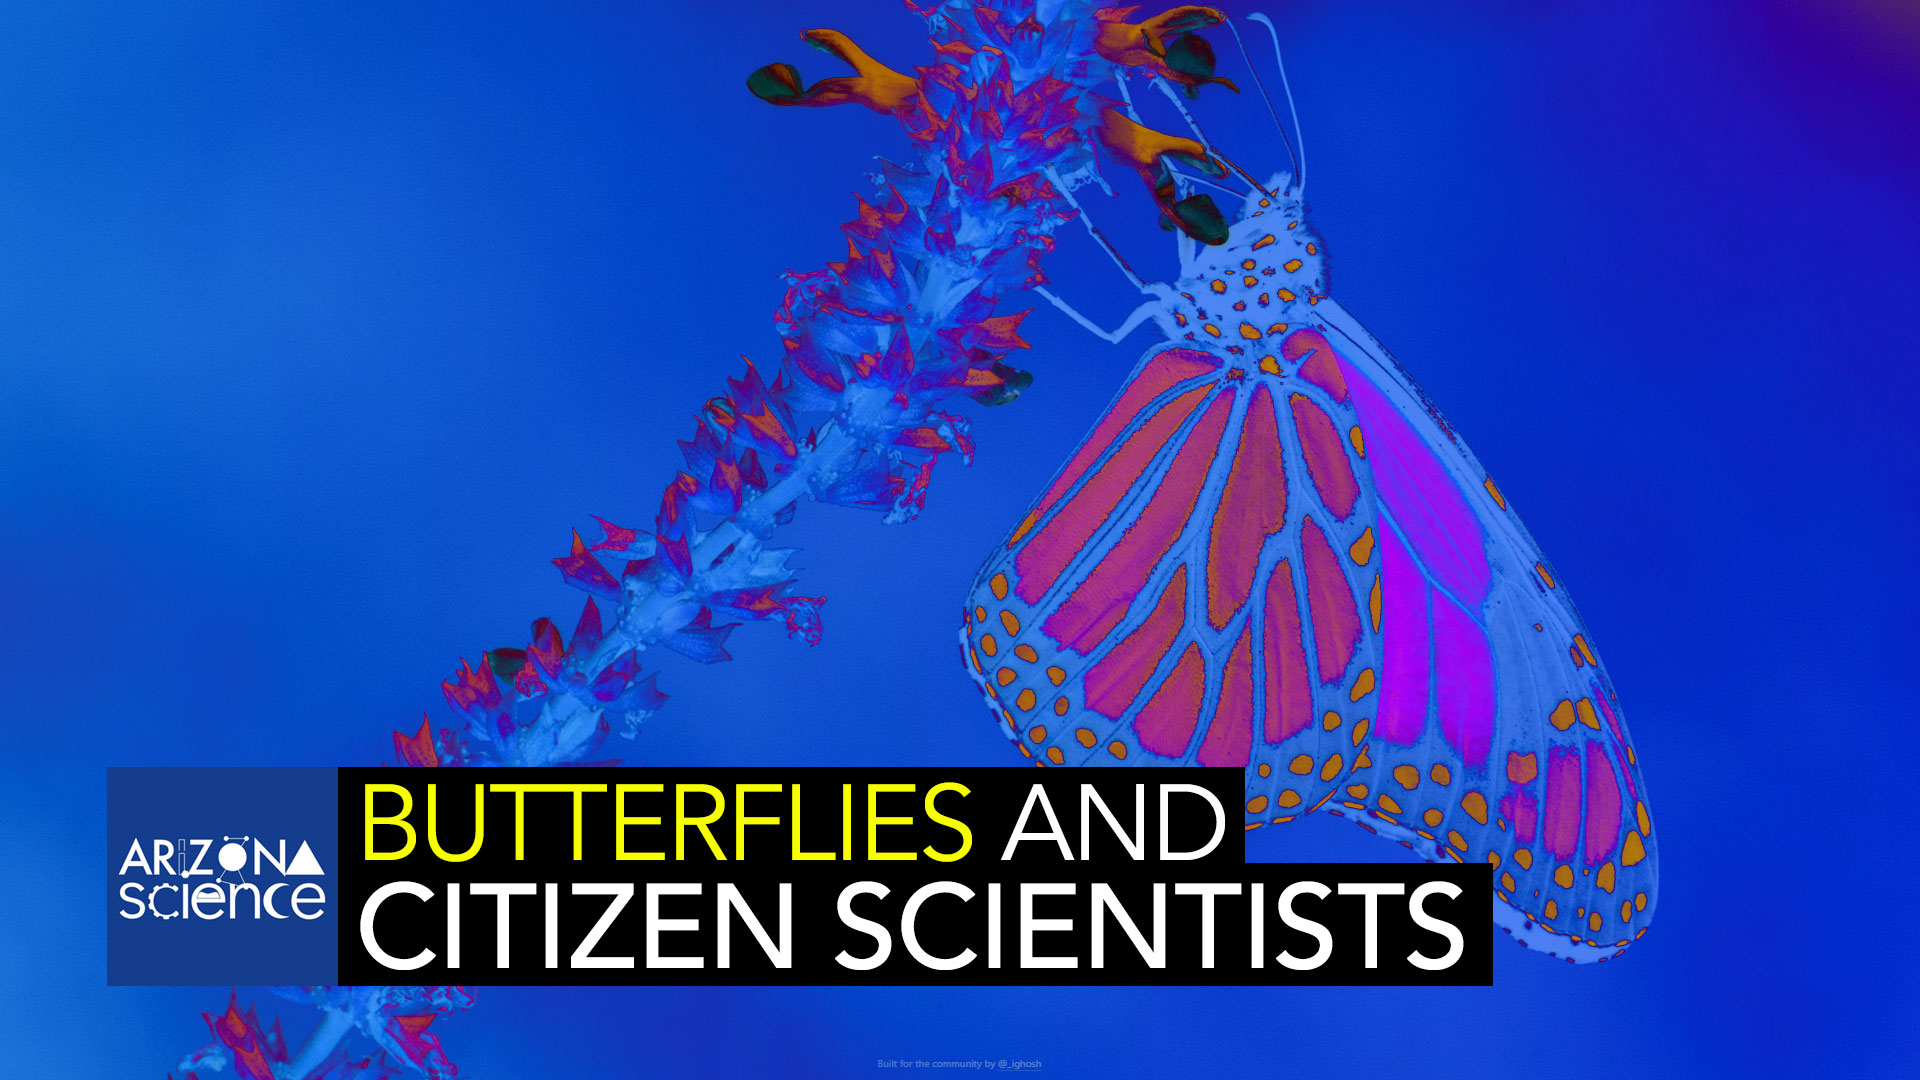 Citizen scientists are providing crucial field data on butterflies and pollination.